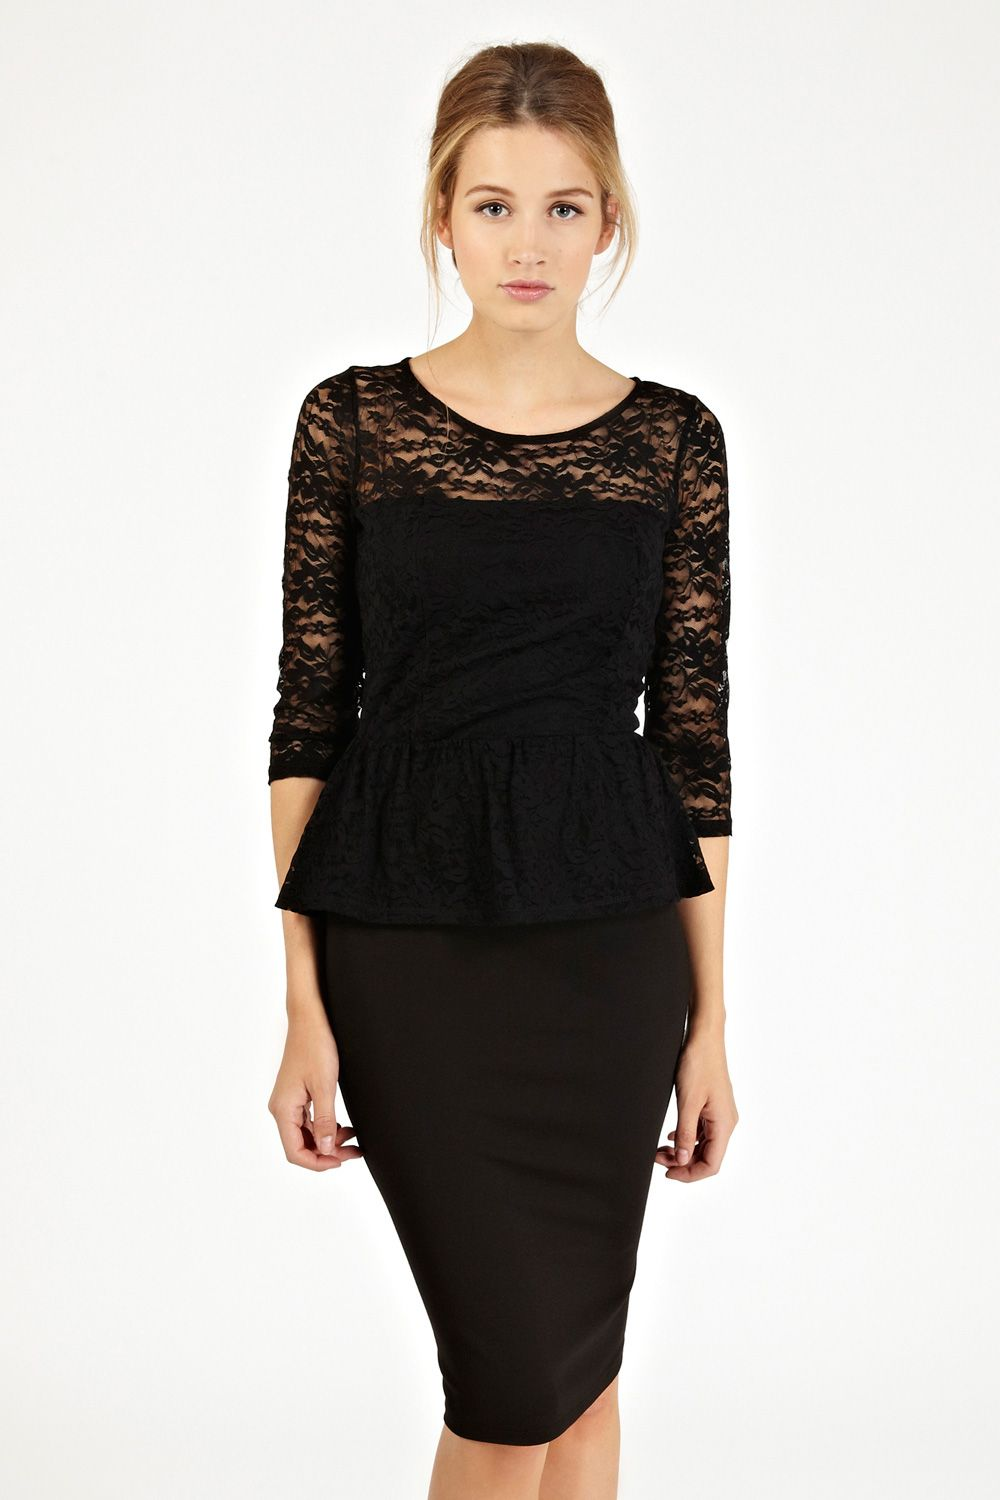 Find the perfect Three Quarter Sleeve Peplum Top, Short Sleeve Peplum Top or Sleeveless Peplum Top at Macy's. Macy's Presents: The Edit - A curated mix of fashion and inspiration Check It Out Free Shipping with $75 purchase + Free Store Pickup.